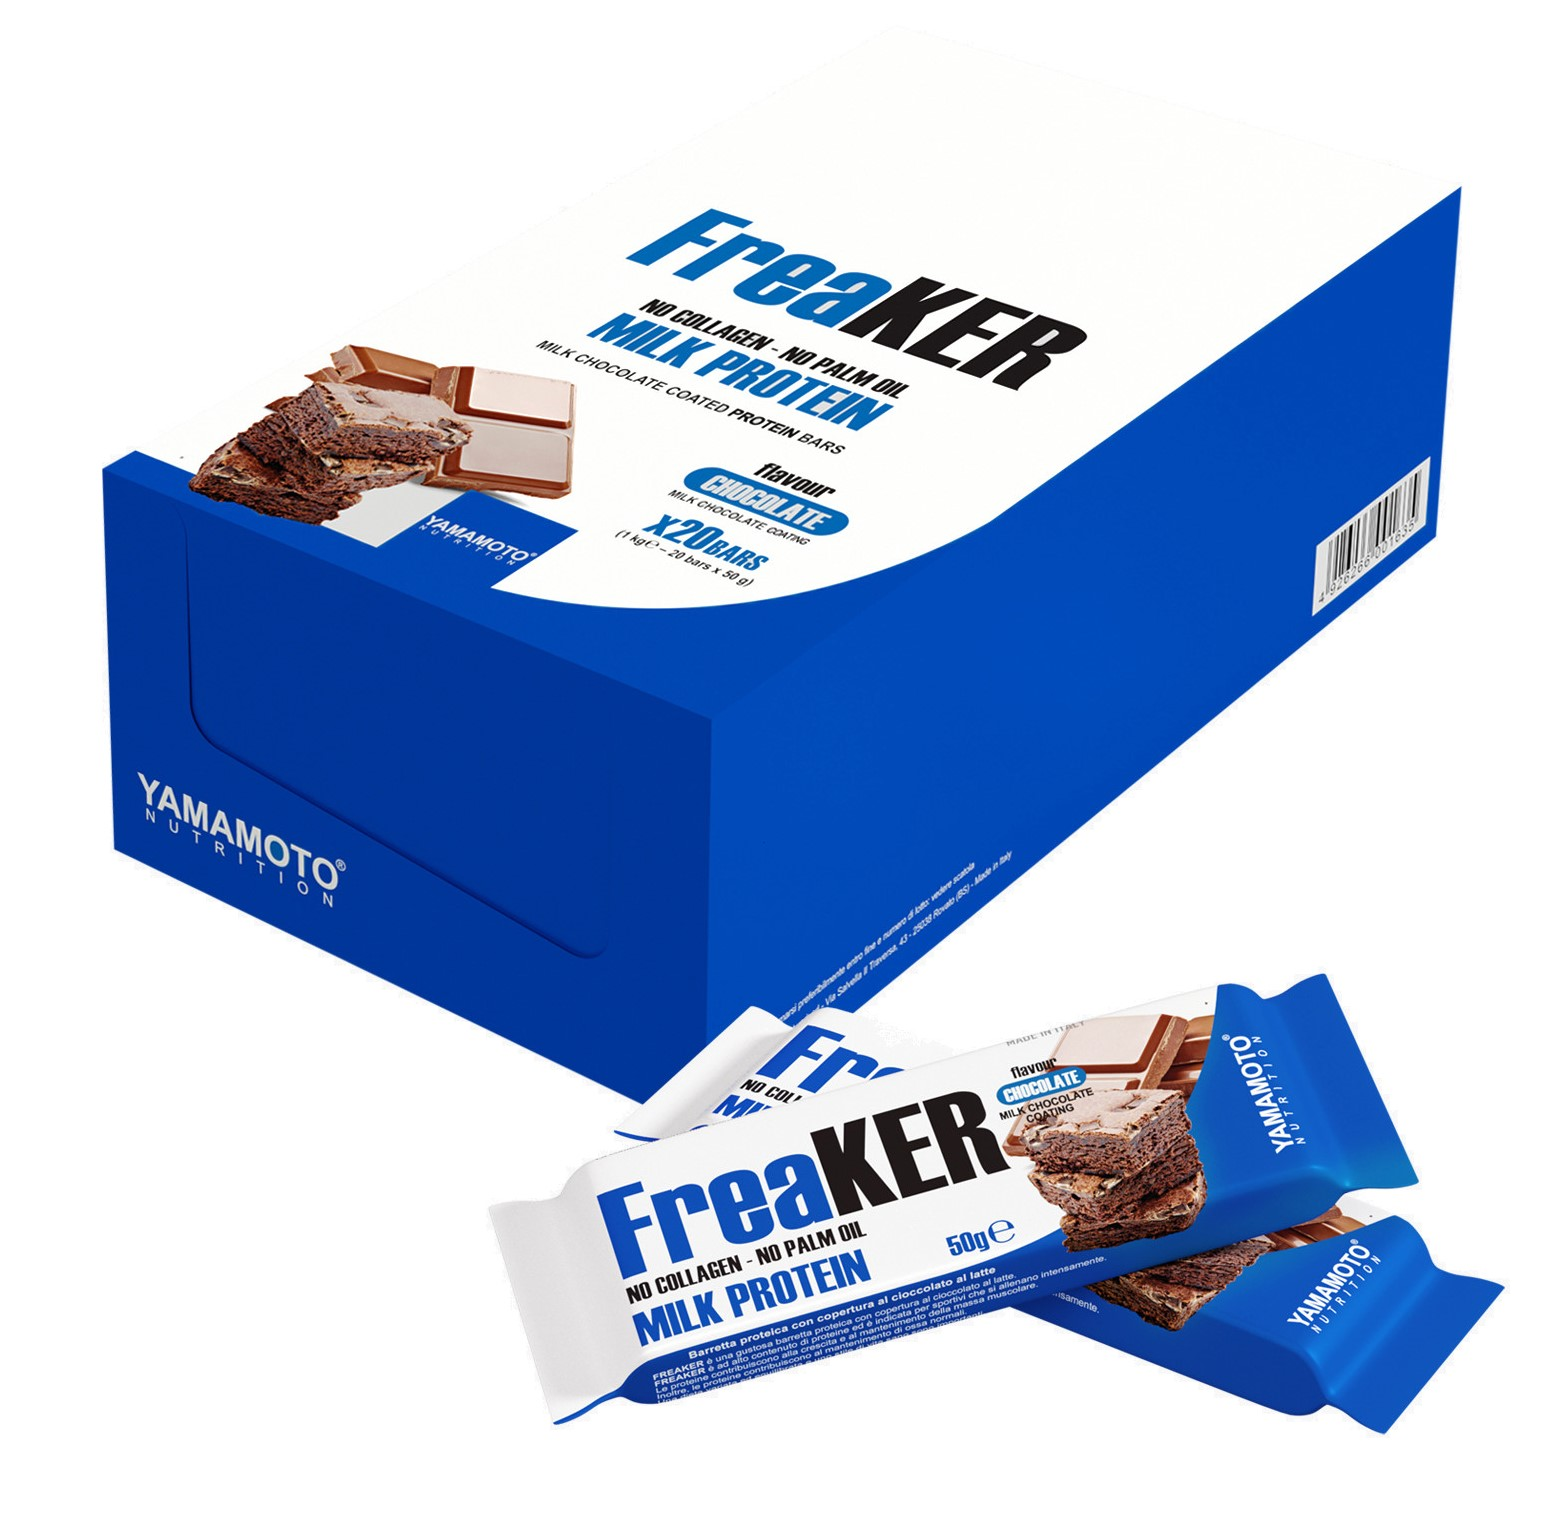 FreaKER, Almonds with White Chocolate Coating - 20 x 50g versandkostenfrei/portofrei bestellen/kaufen